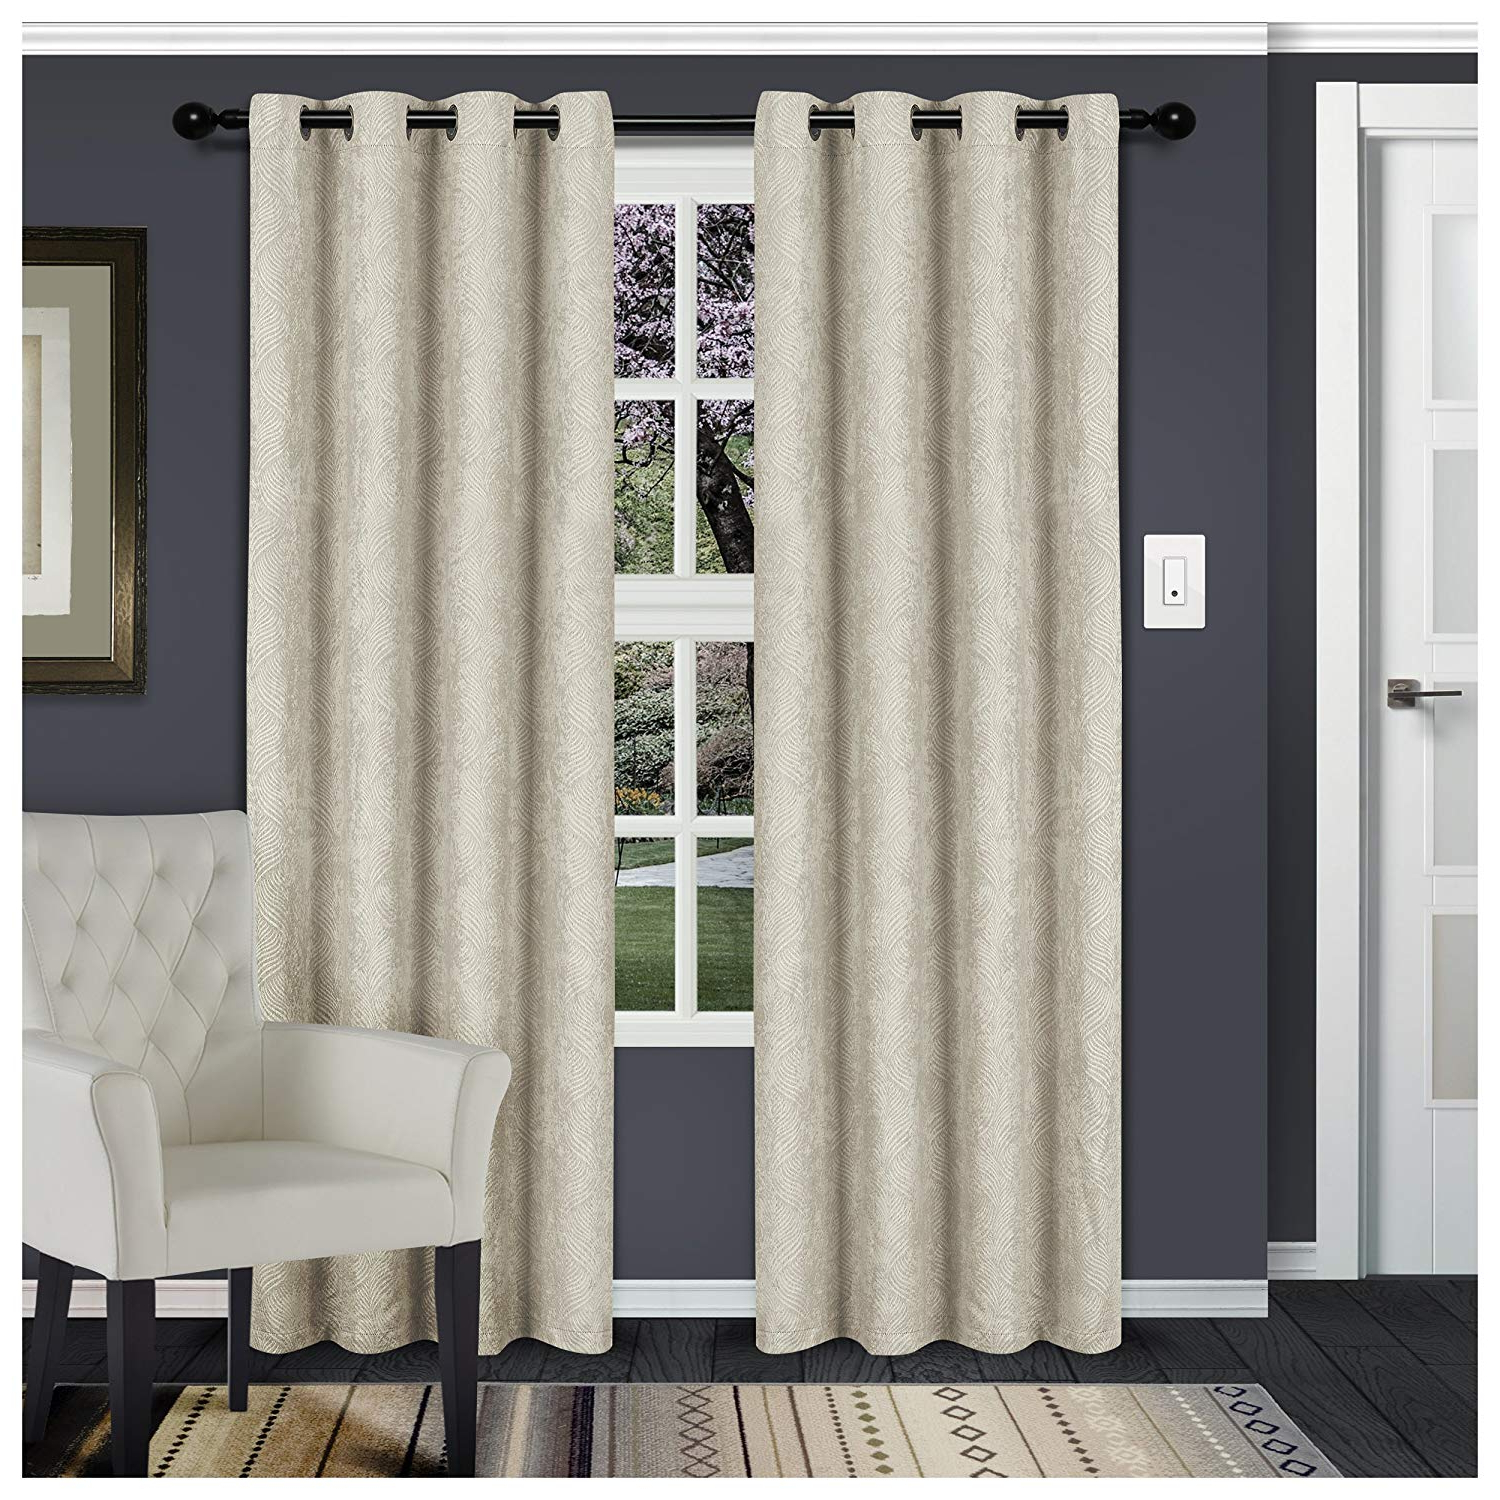 Well Known Superior Solid Insulated Thermal Blackout Grommet Curtain Panel Pairs Inside Superior Waverly Blackout Curtain Set Of 2, Thermal Insulated Panel Pair  With Grommet Top Header, Beautiful Embossed Wave Room Darkening Drapes, (View 20 of 20)